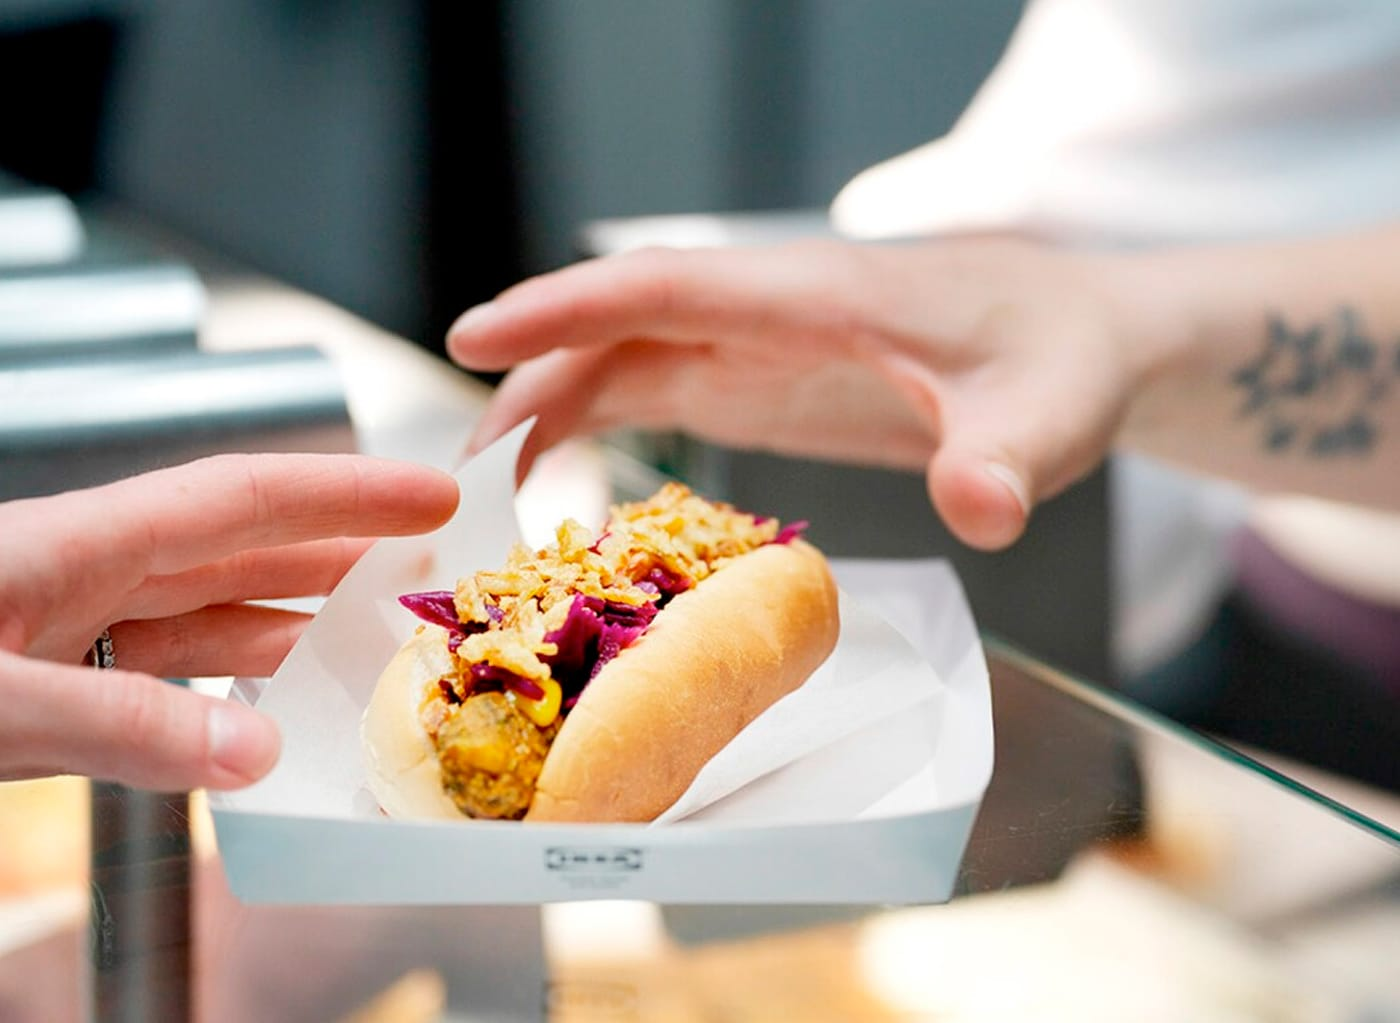 A close-up of a hand reaching for the IKEA veggie hot dog.